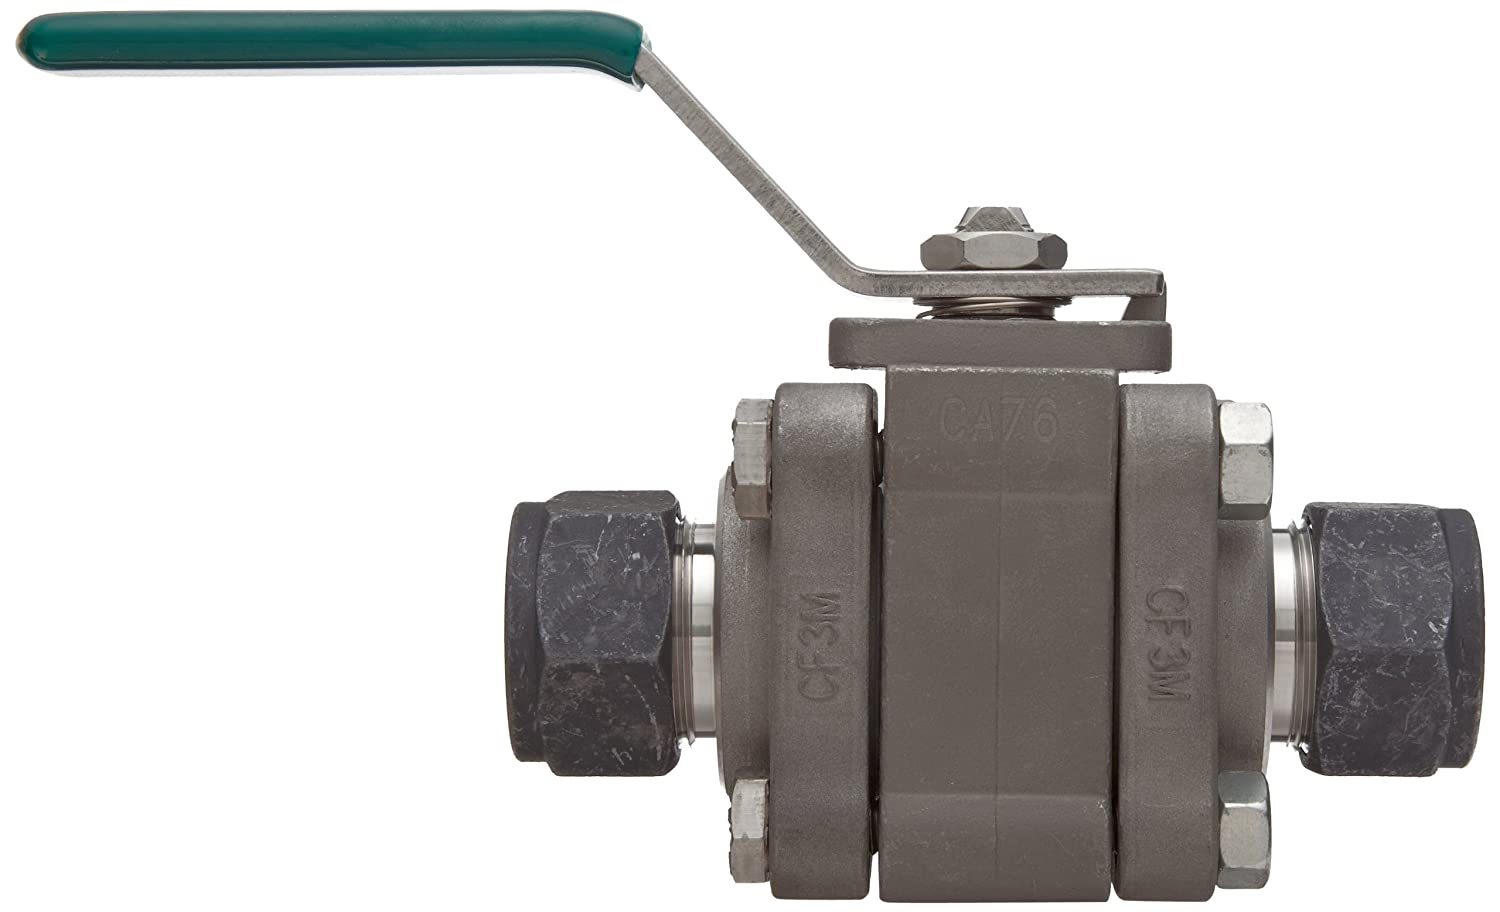 Parker SWB Series Stainless Steel Ball Valve 1 CPI Compression Fitting 1 CPI Compression Fitting Parker Hannifin 16Z-SWB16L-RT-T-SS Inline